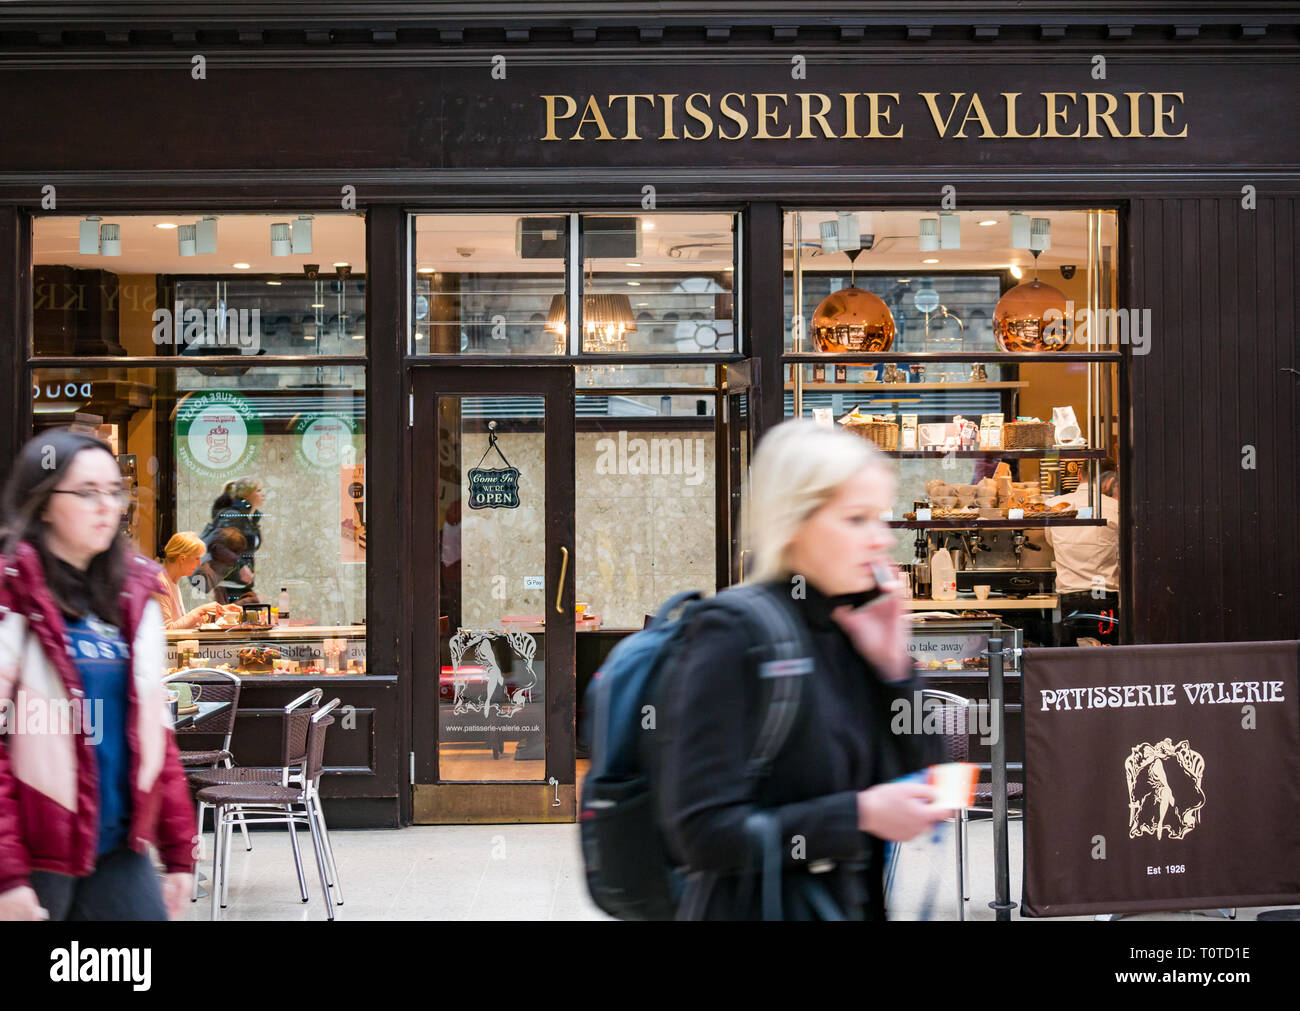 People passing Patisserie Valerie, Glasgow Central Station concourse, Scotland, UK - Stock Image